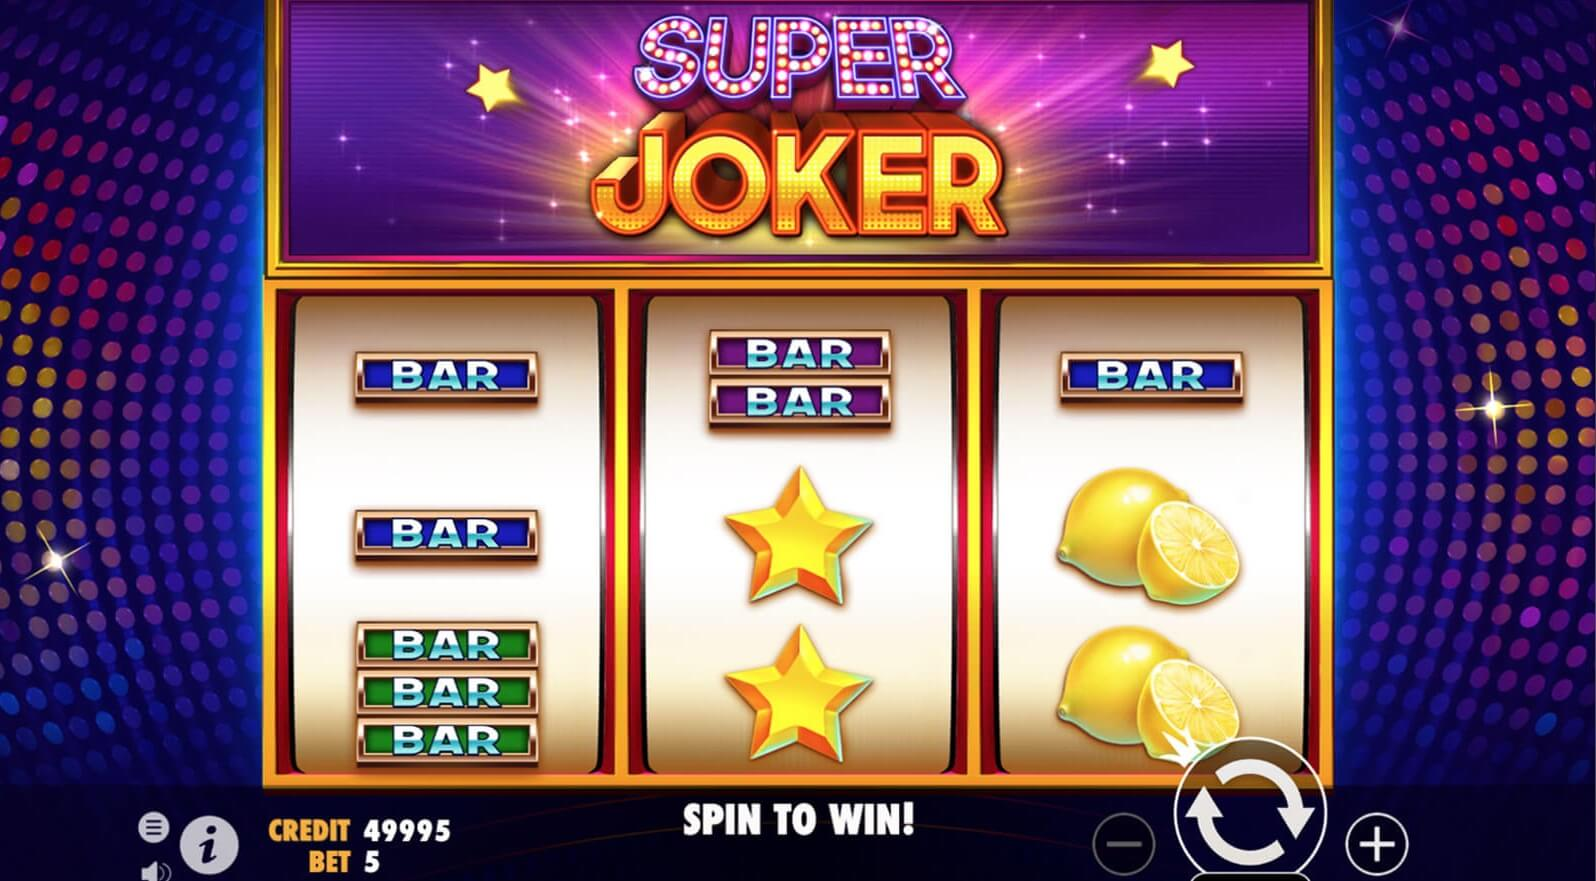 super joker slot screen